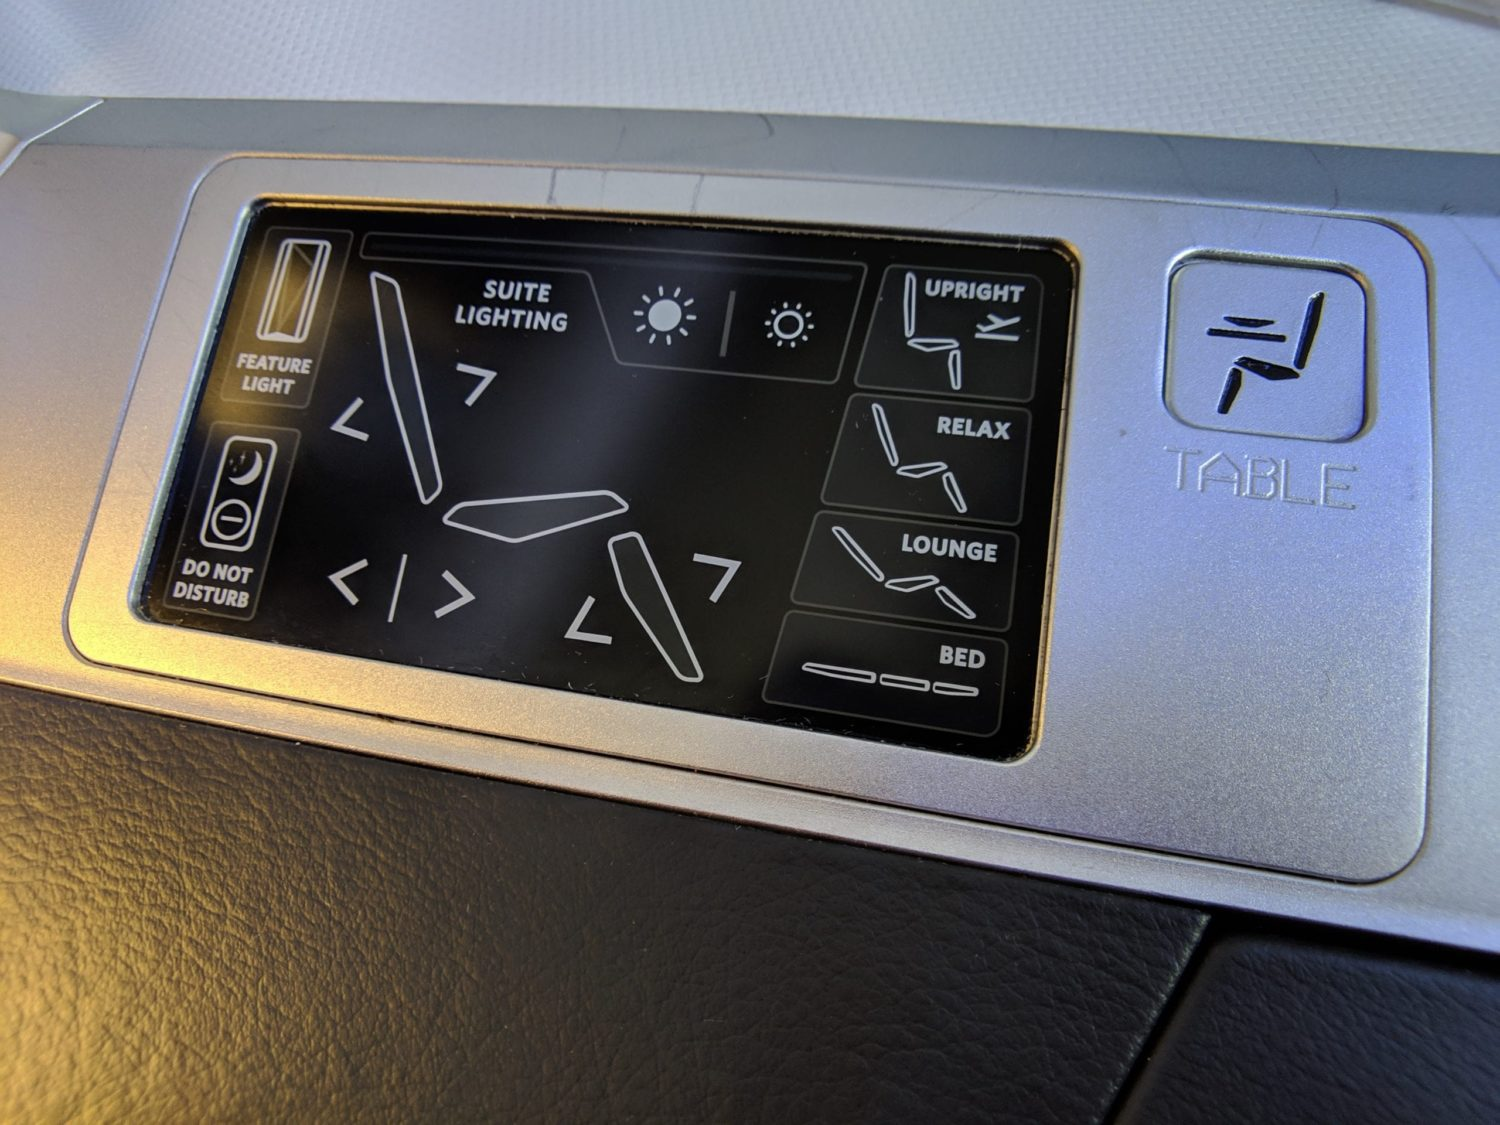 delta one suite controls